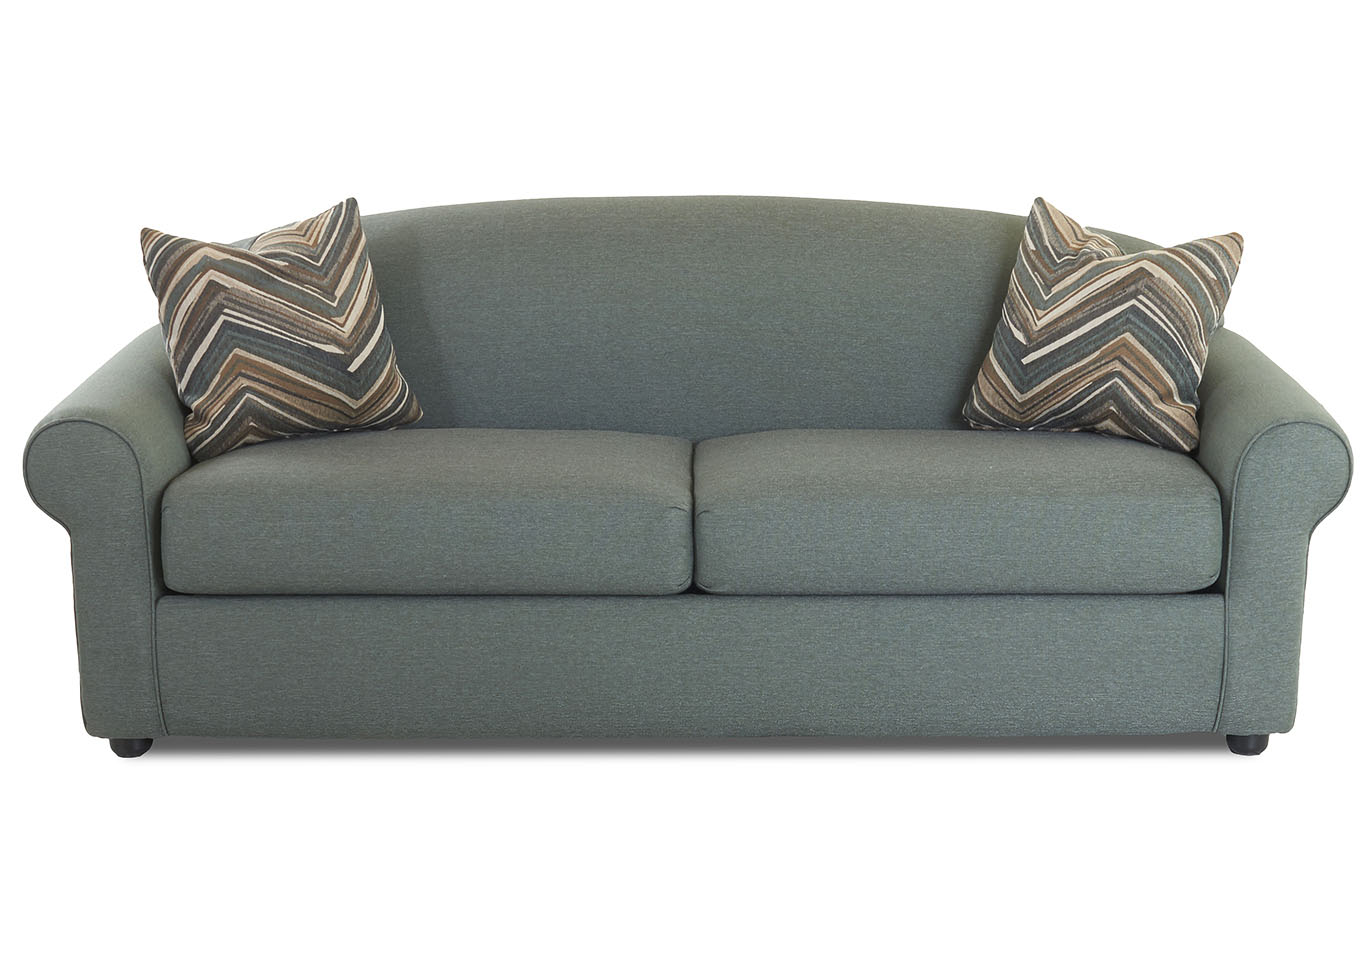 Beautiful Possibilities Turquoise Sleeper Fabric Sofa,Klaussner Home Furnishings